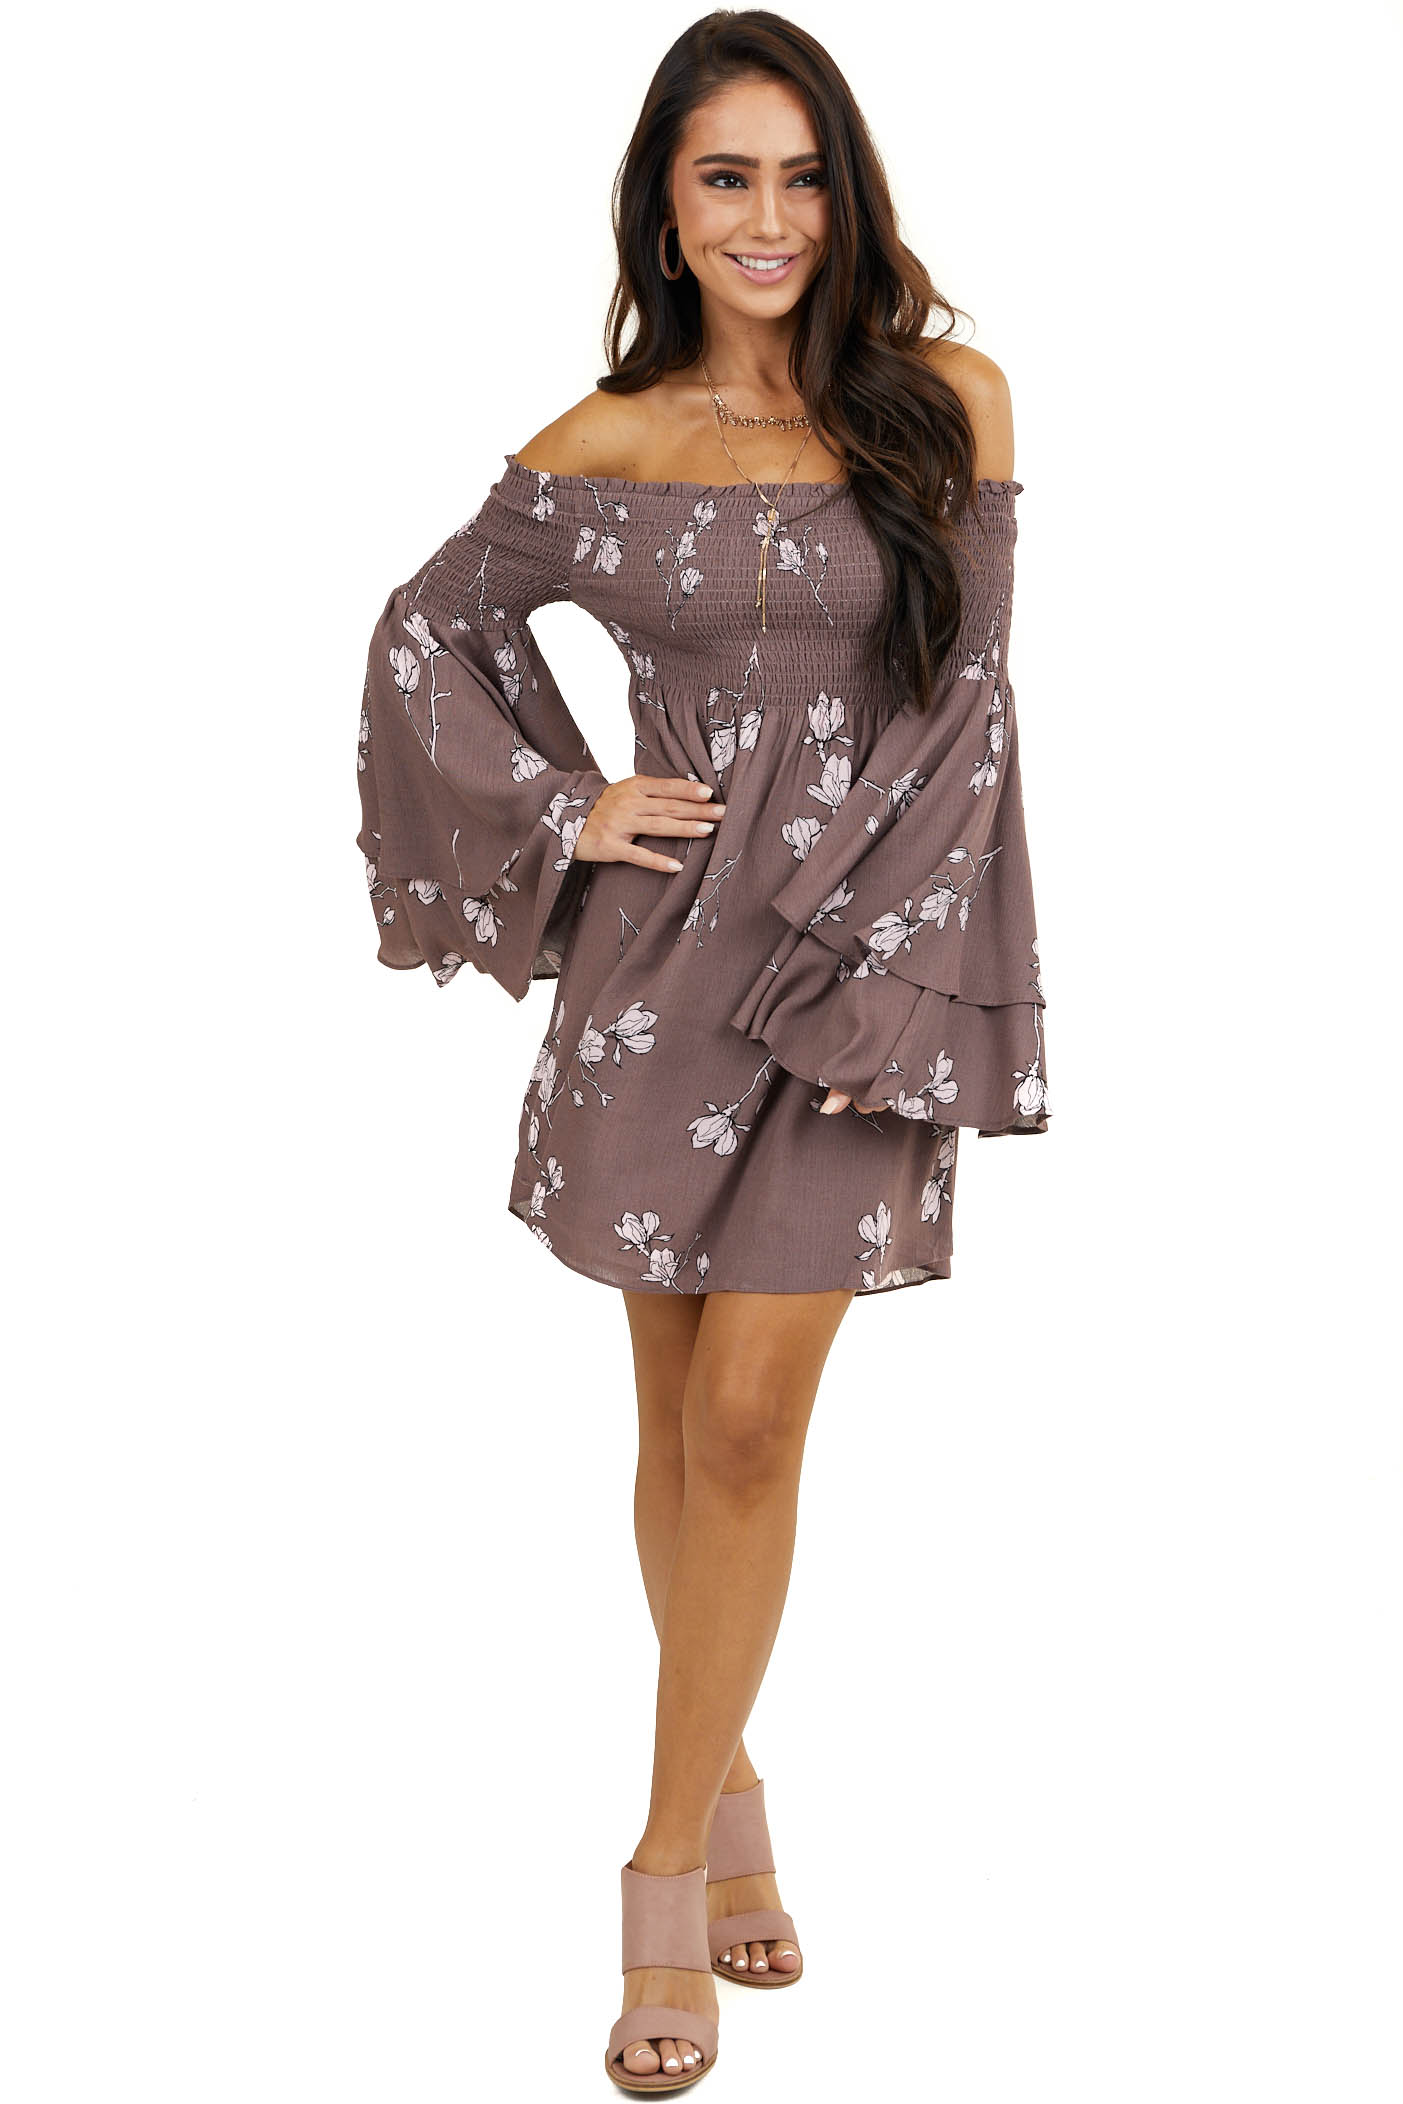 Chocolate Floral Off Shoulder Dress with Long Flare Sleeves